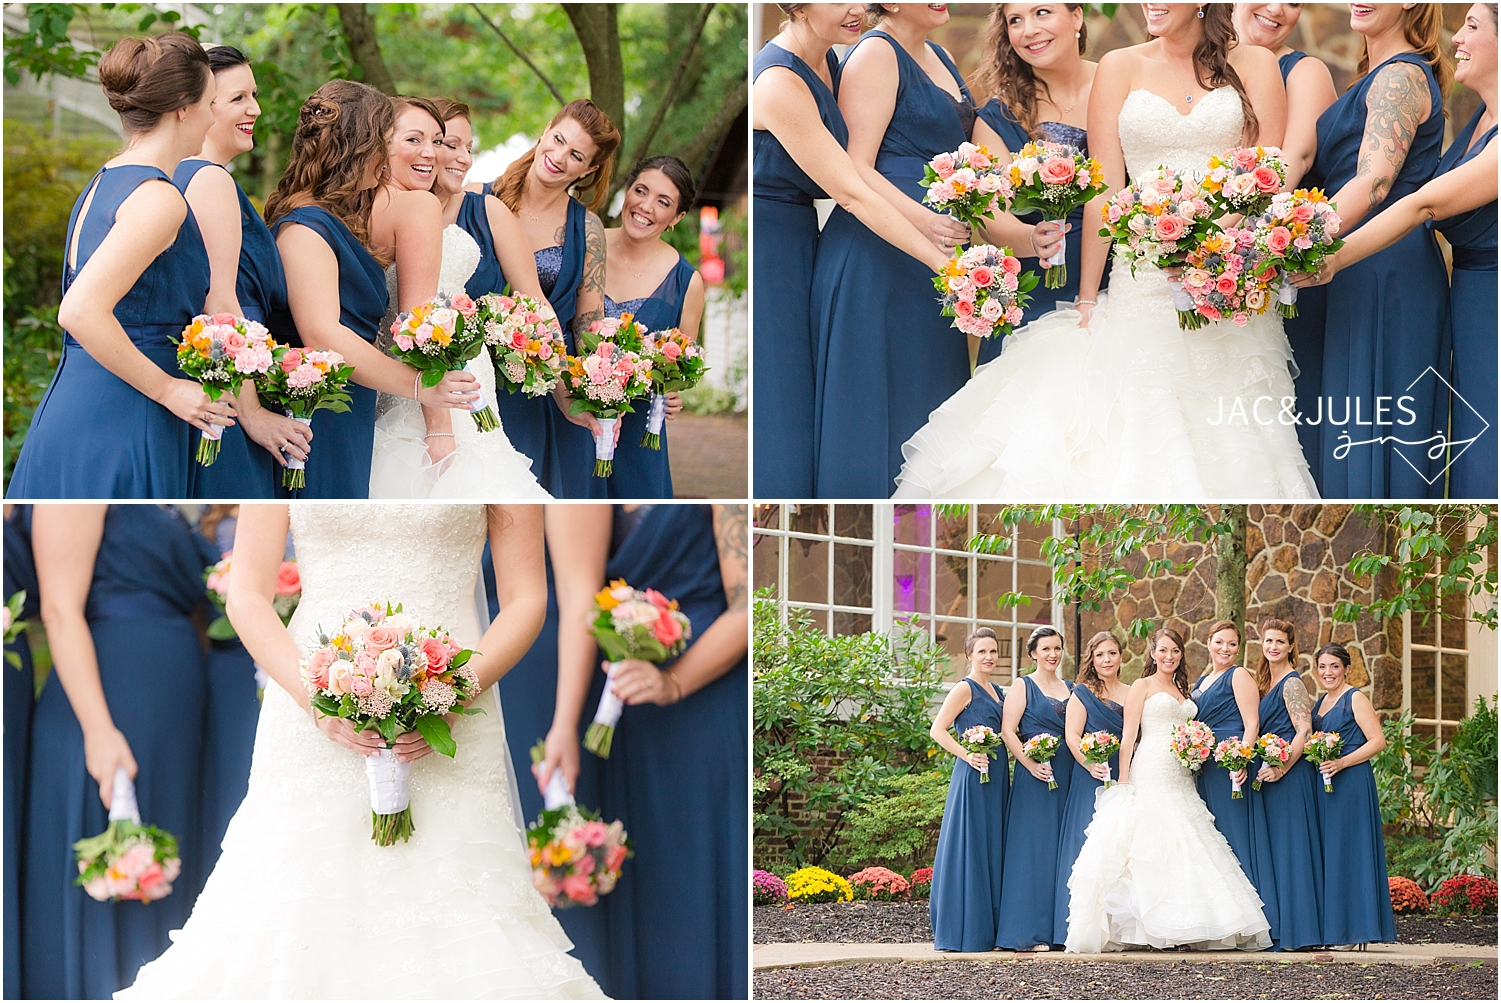 jacnjules photograph bride and bridesmaids in navy dresses at Smithville, NJ for a wedding